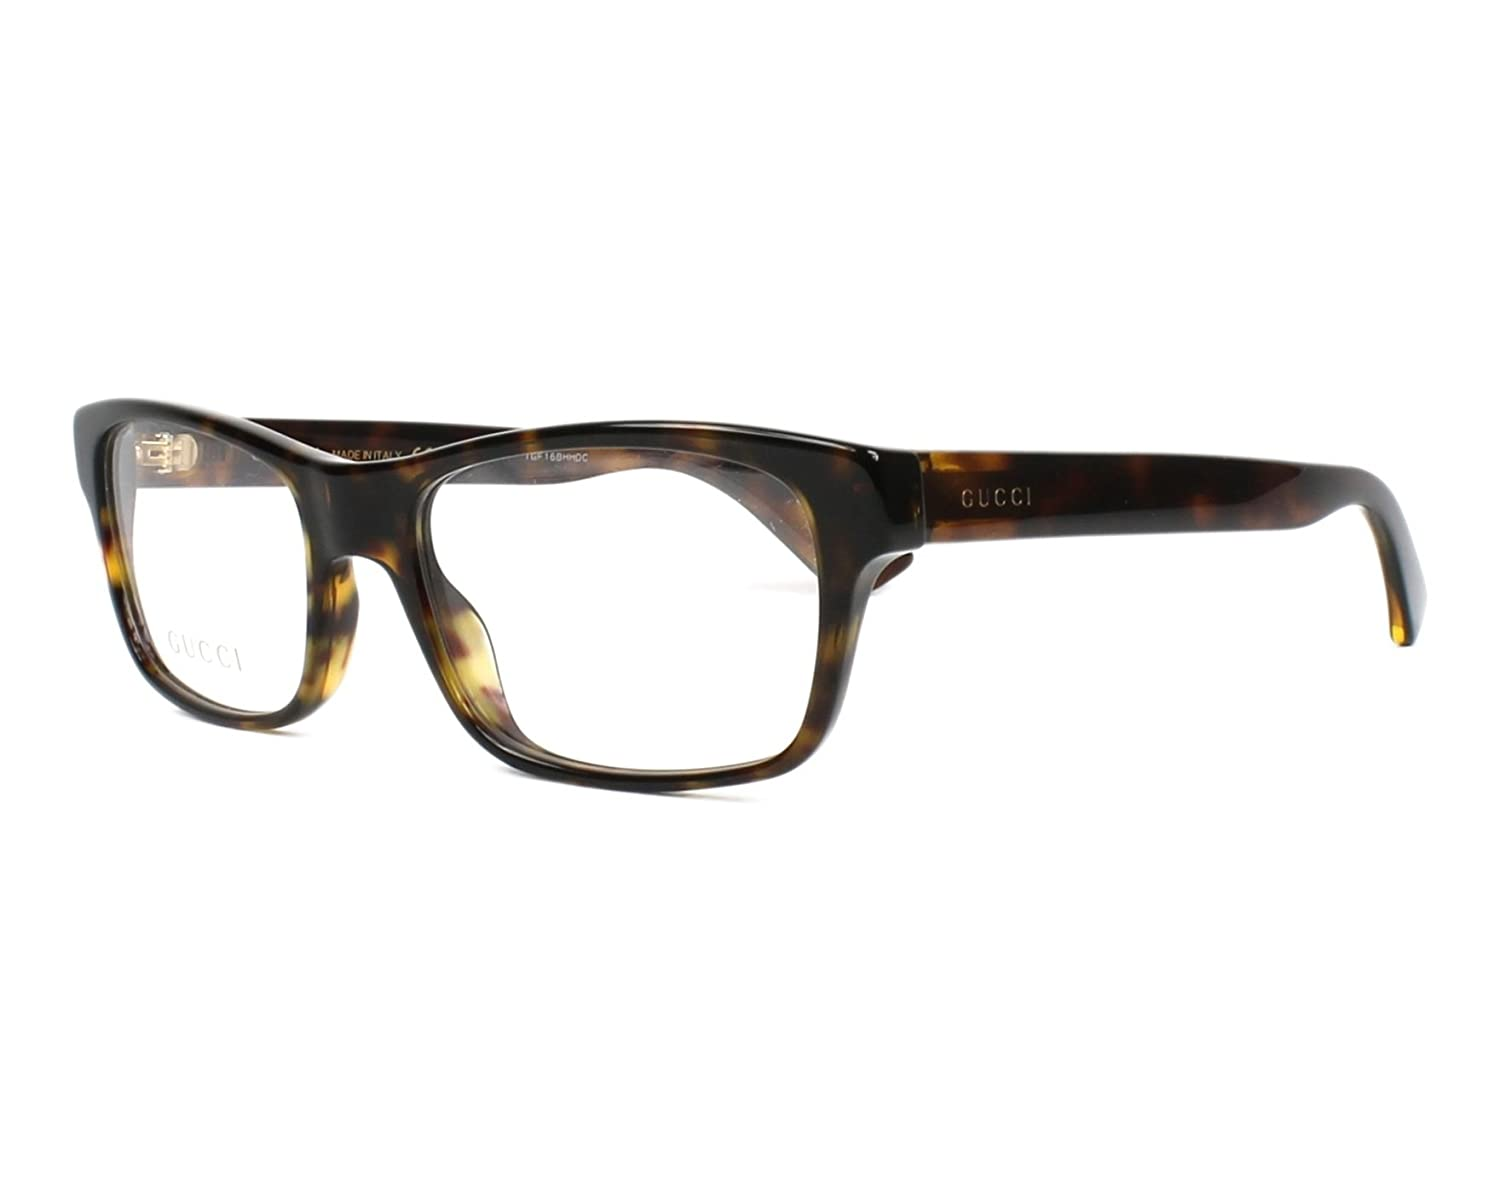 64b3182826b Amazon.com  Eyeglasses Gucci GG 0006 O- 009 AVANA    Clothing